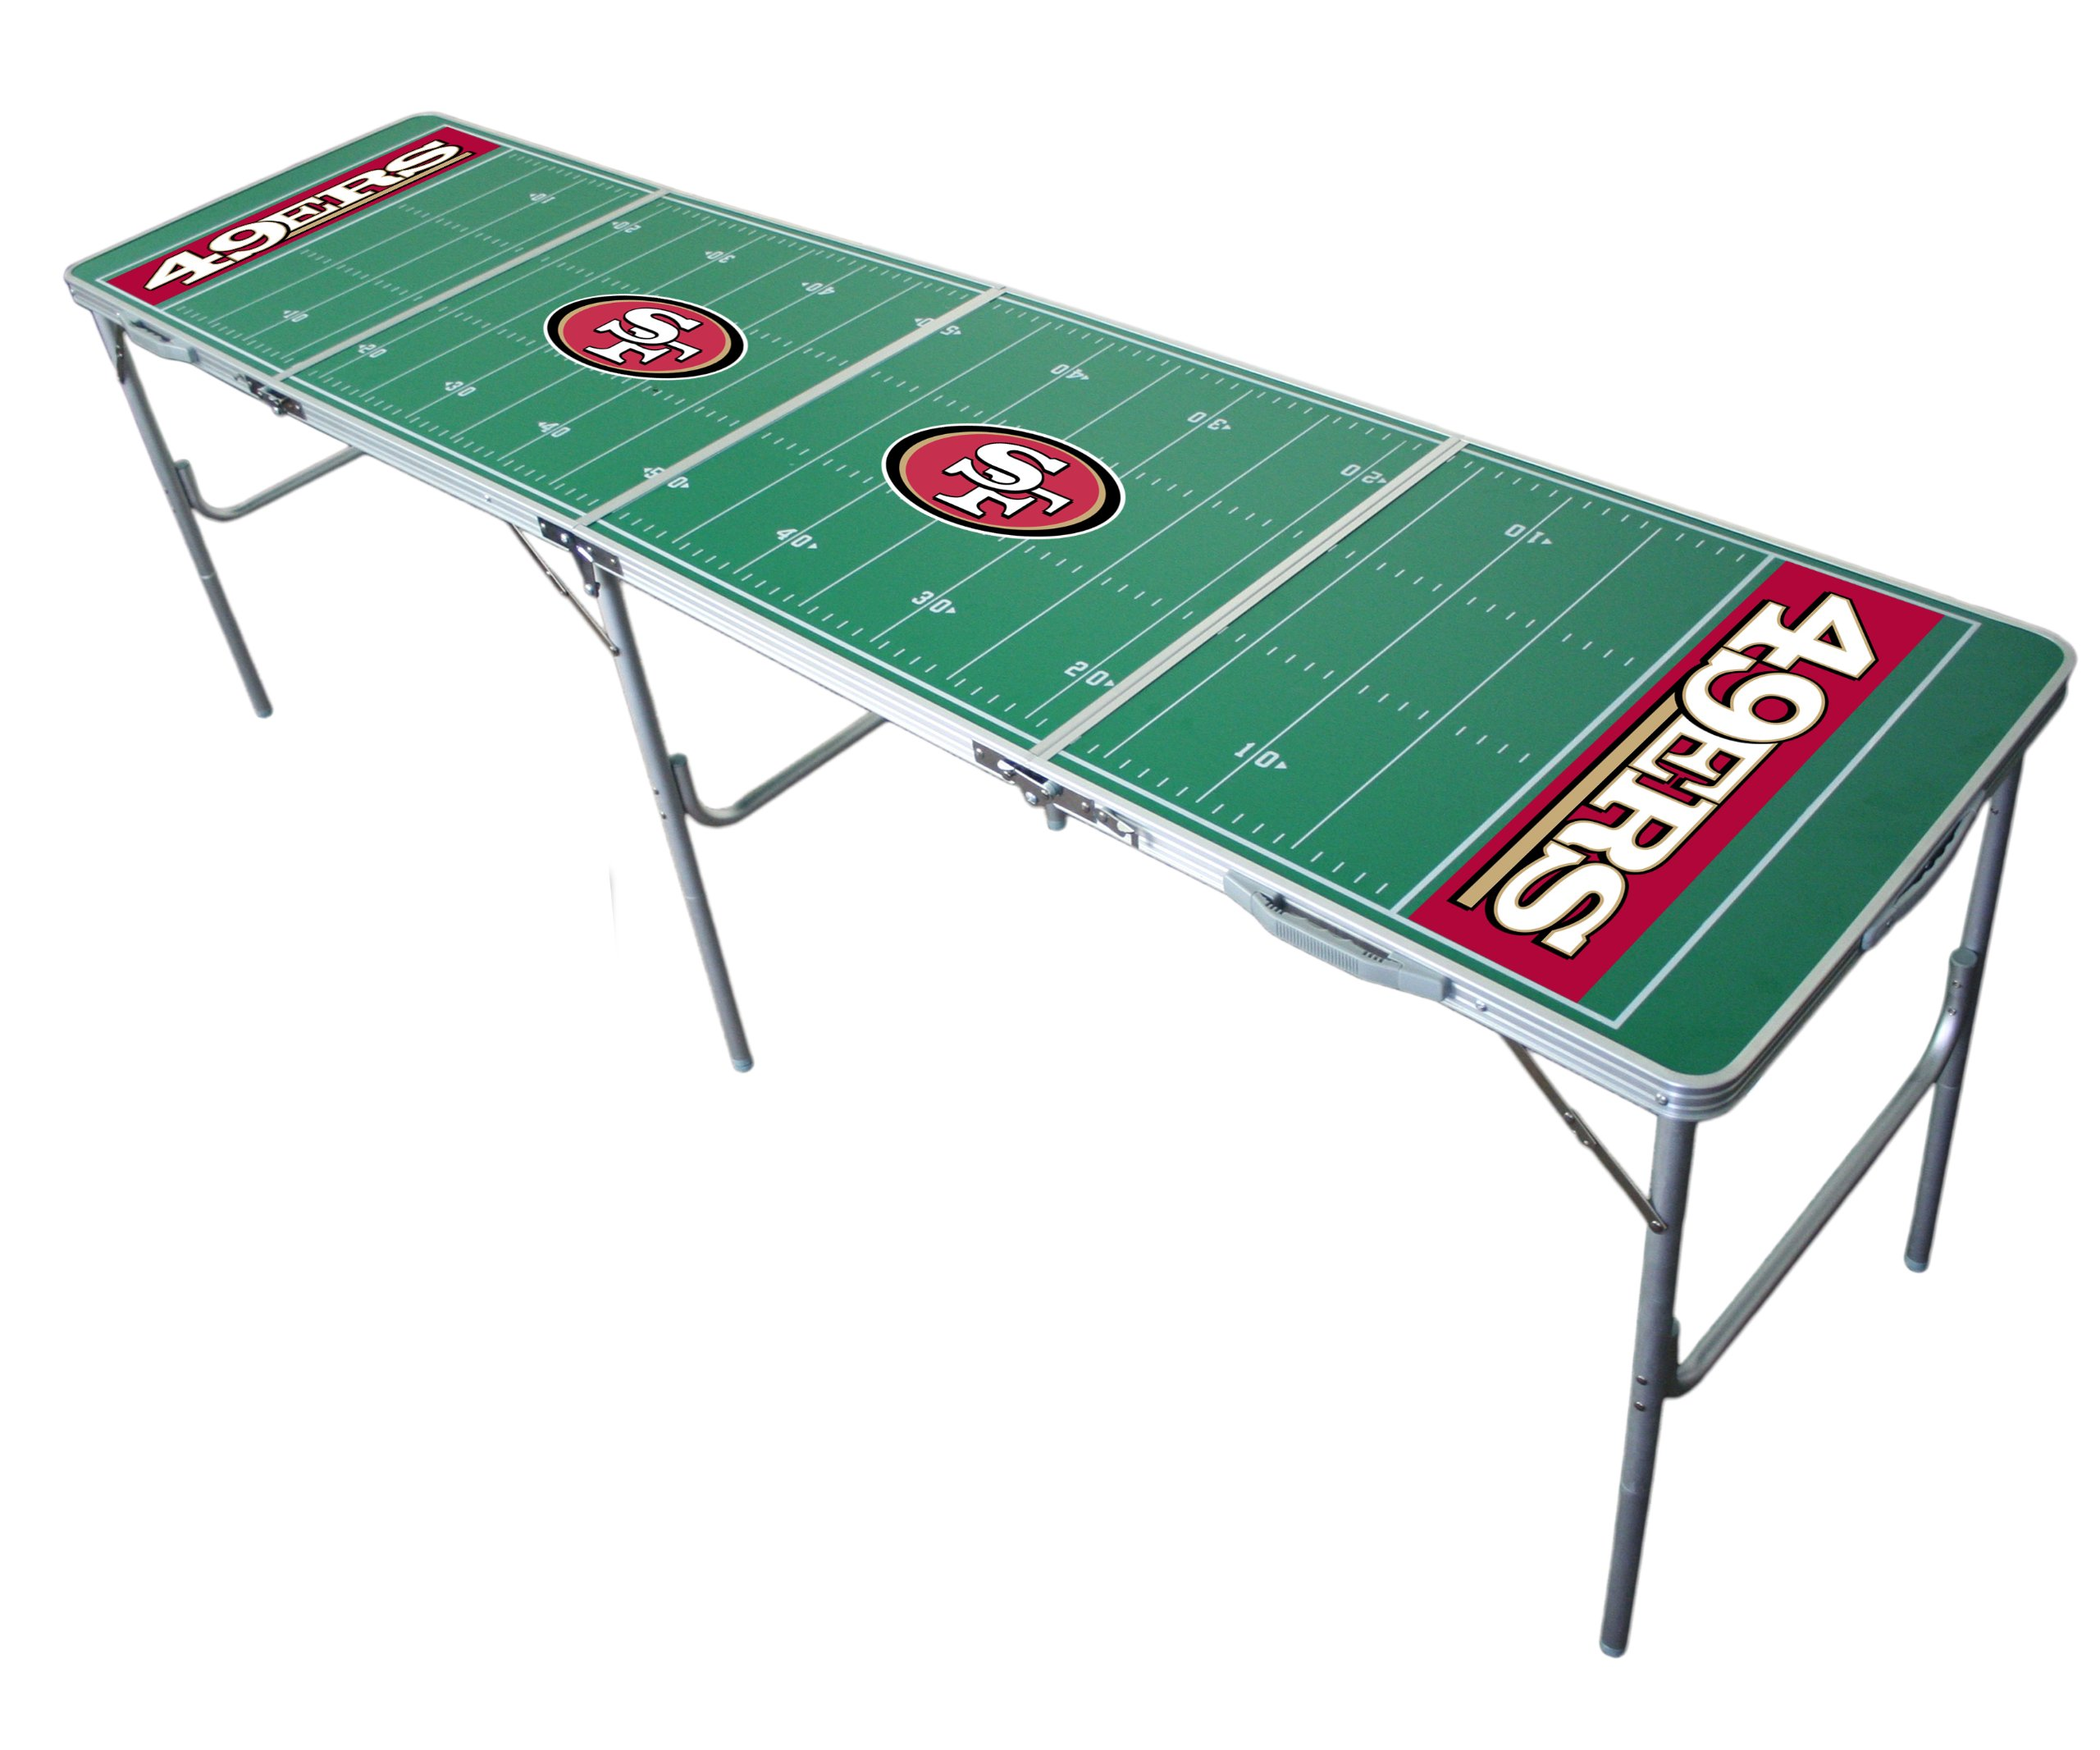 San Francisco 49ers 2x8 Tailgate Table by Wild Sports by Wild Sports